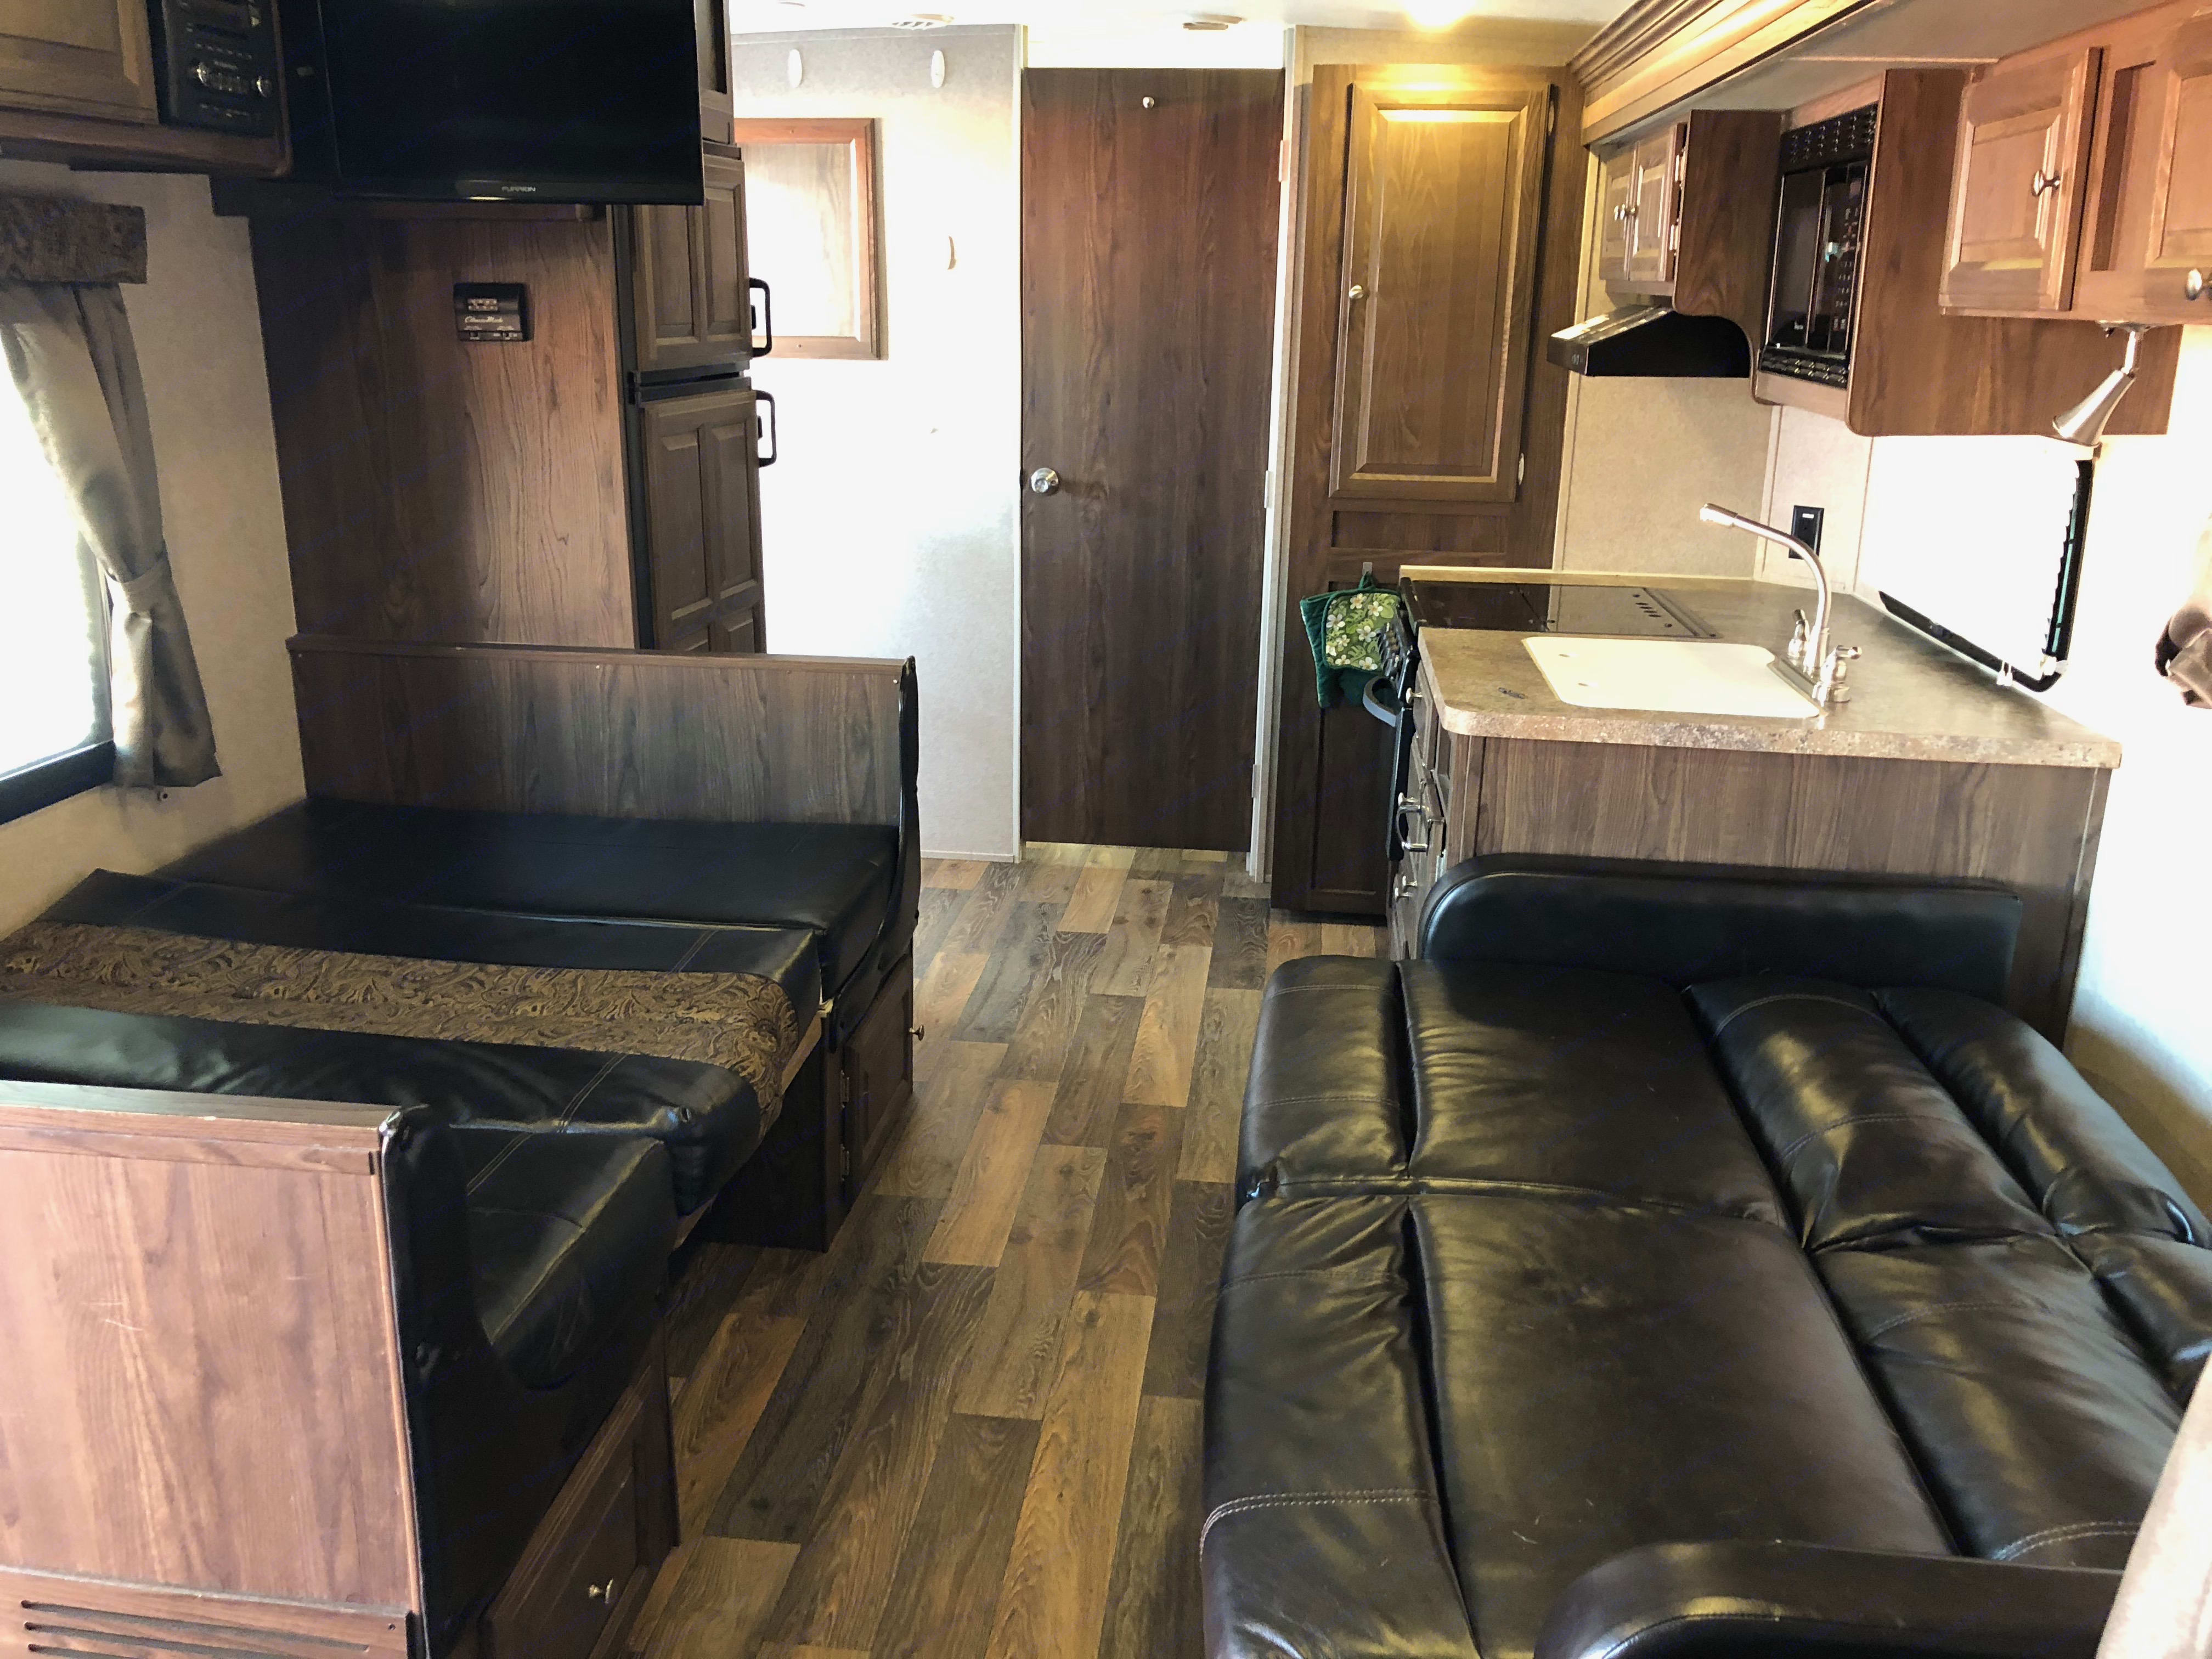 Table and sofa convert to sleeping space. . Forest River Rockwood Mini Lite 2016